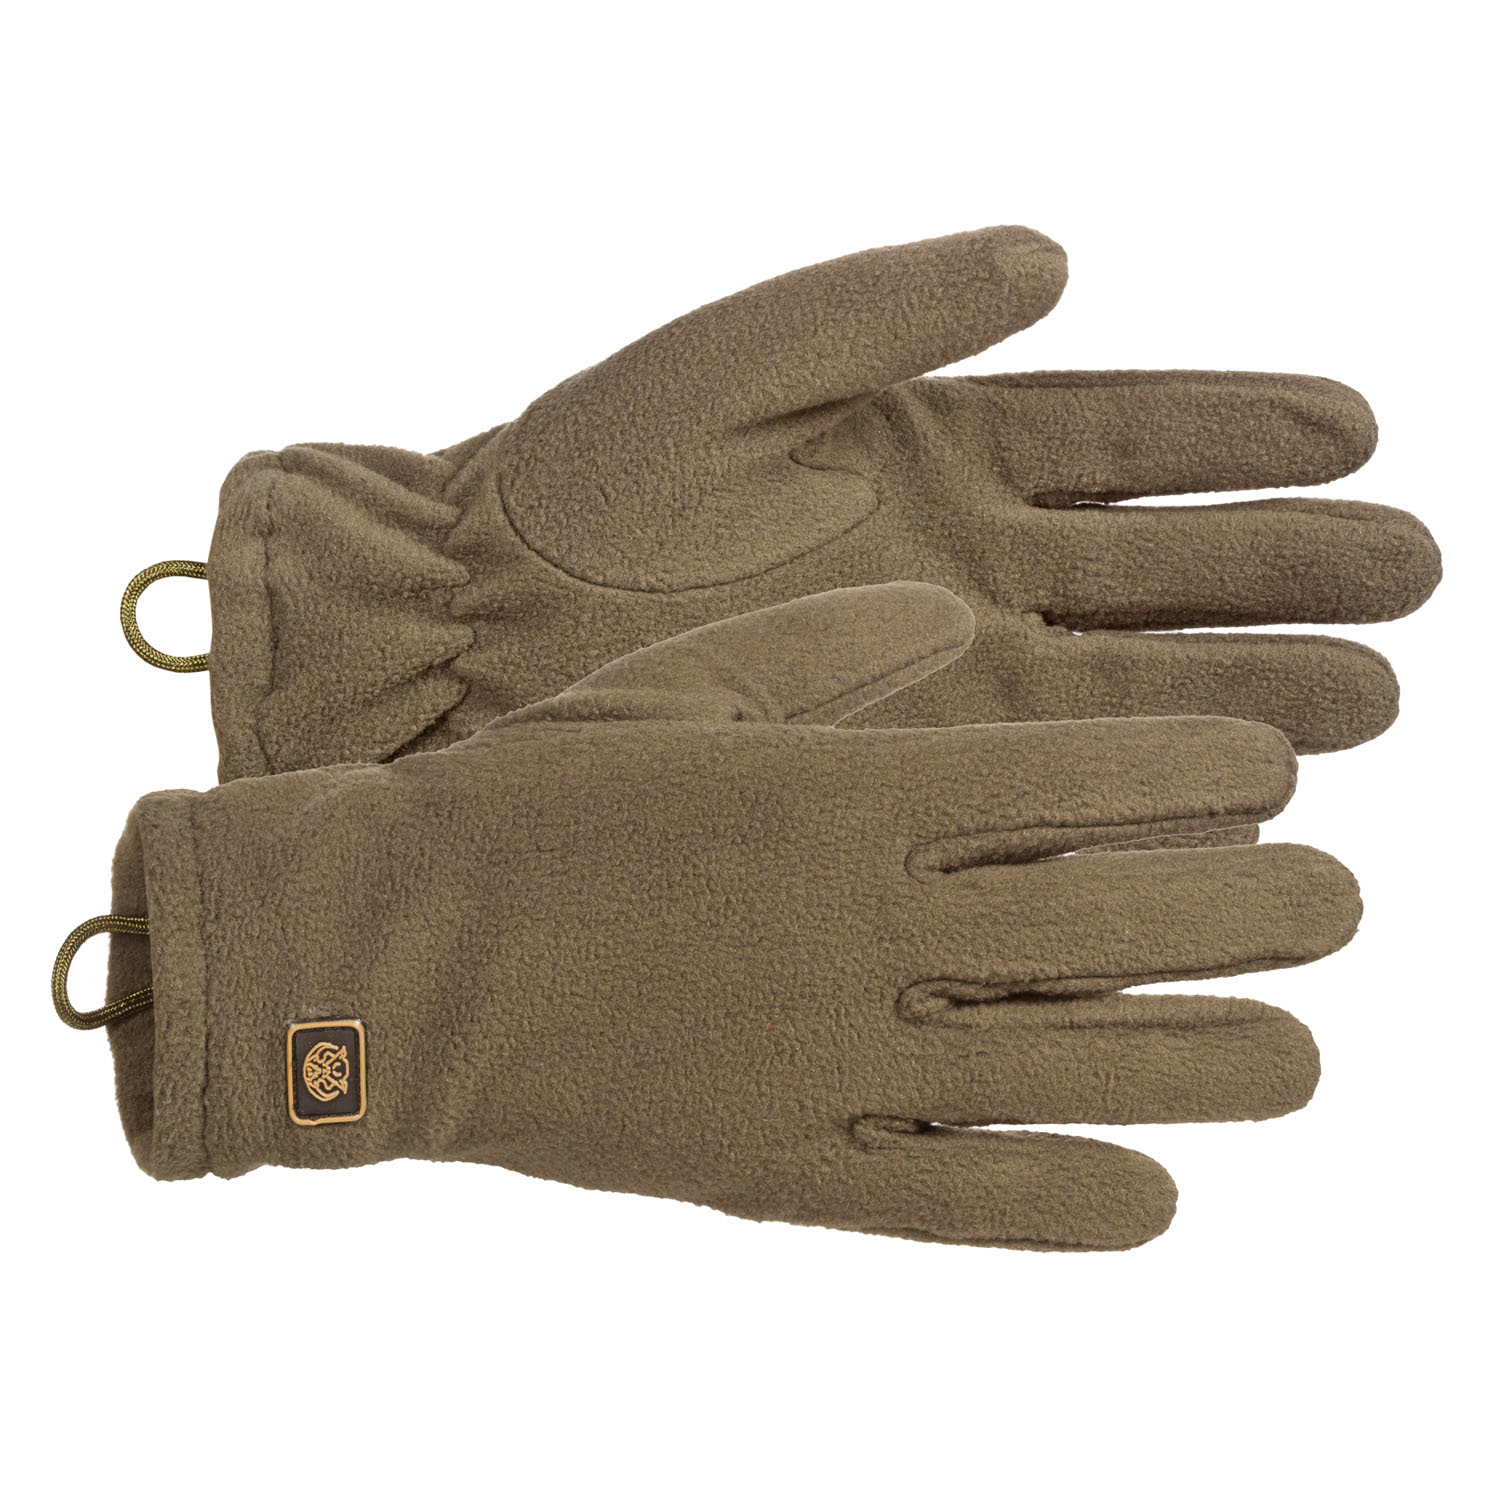 Winter shooting gloves